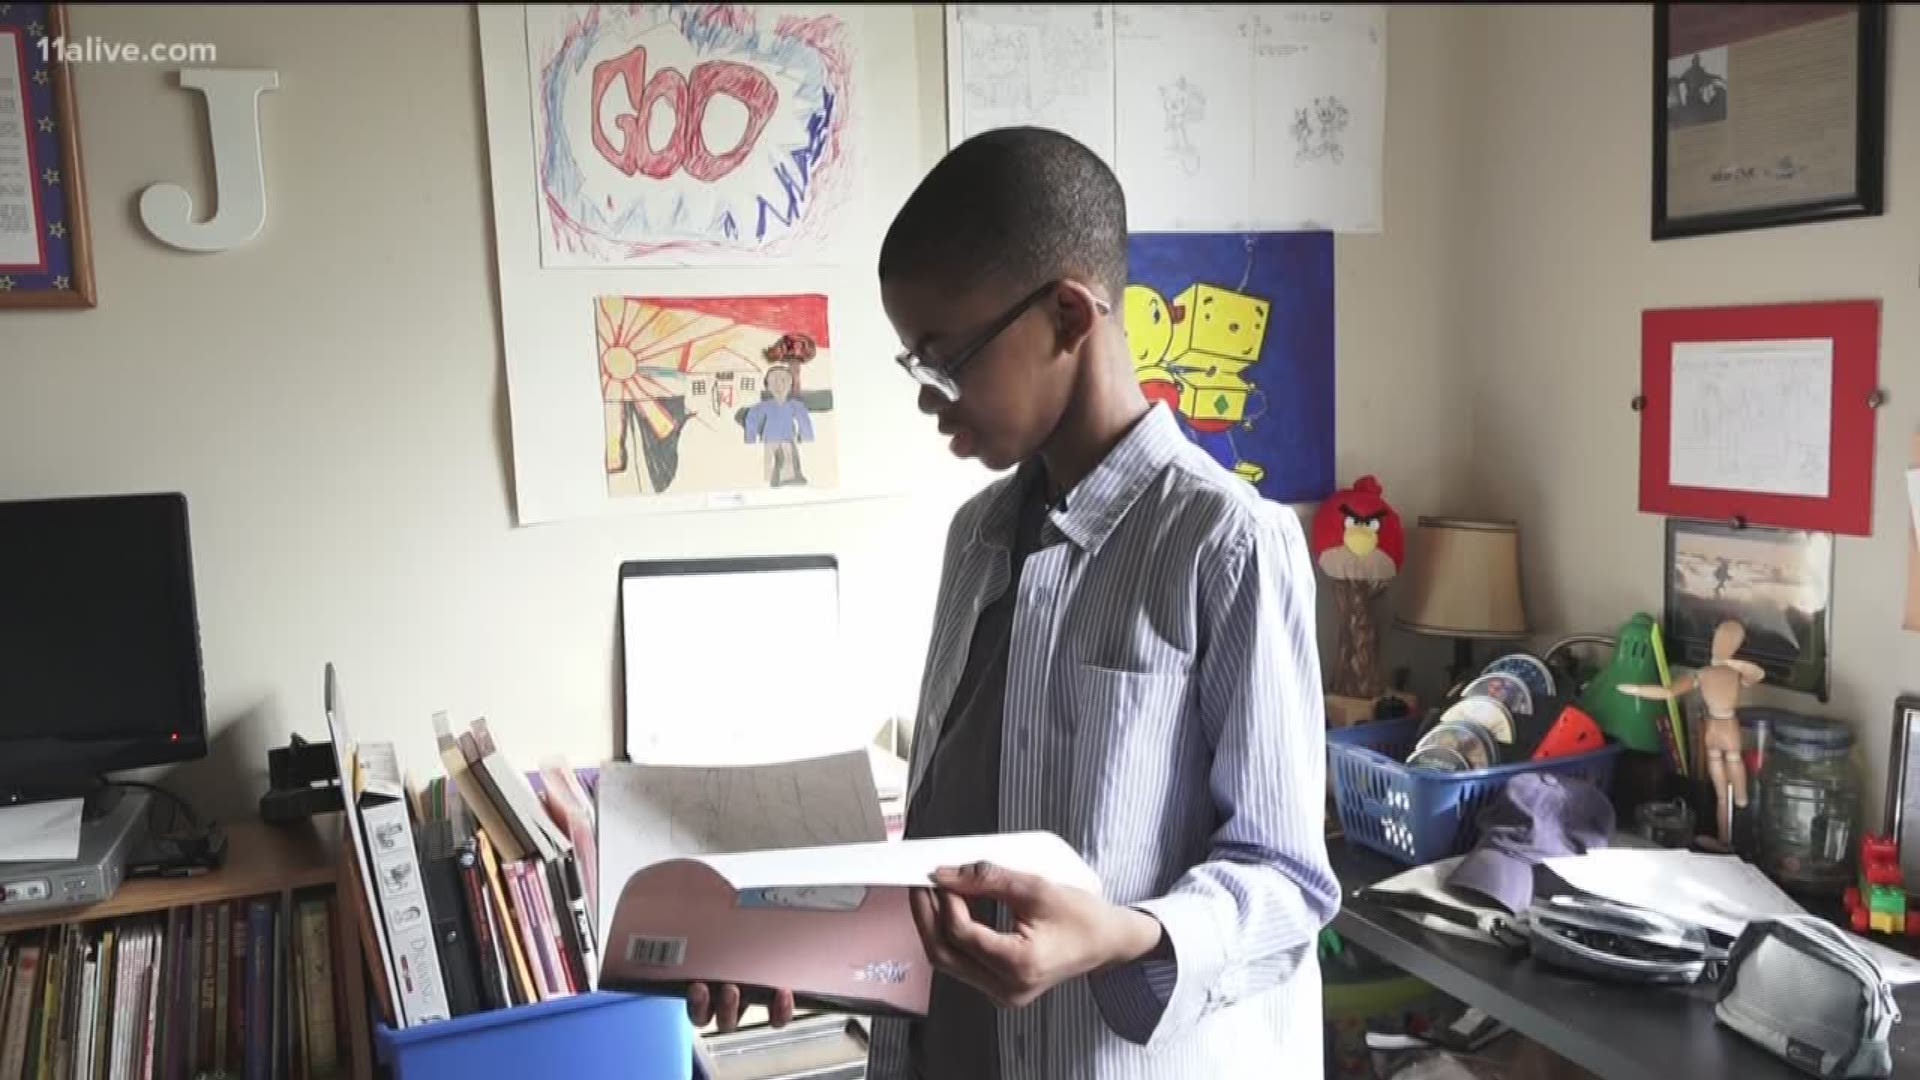 Atlanta 14 Year Old Youtube Animator Has More Than A Million Views Firstcoastnews Com